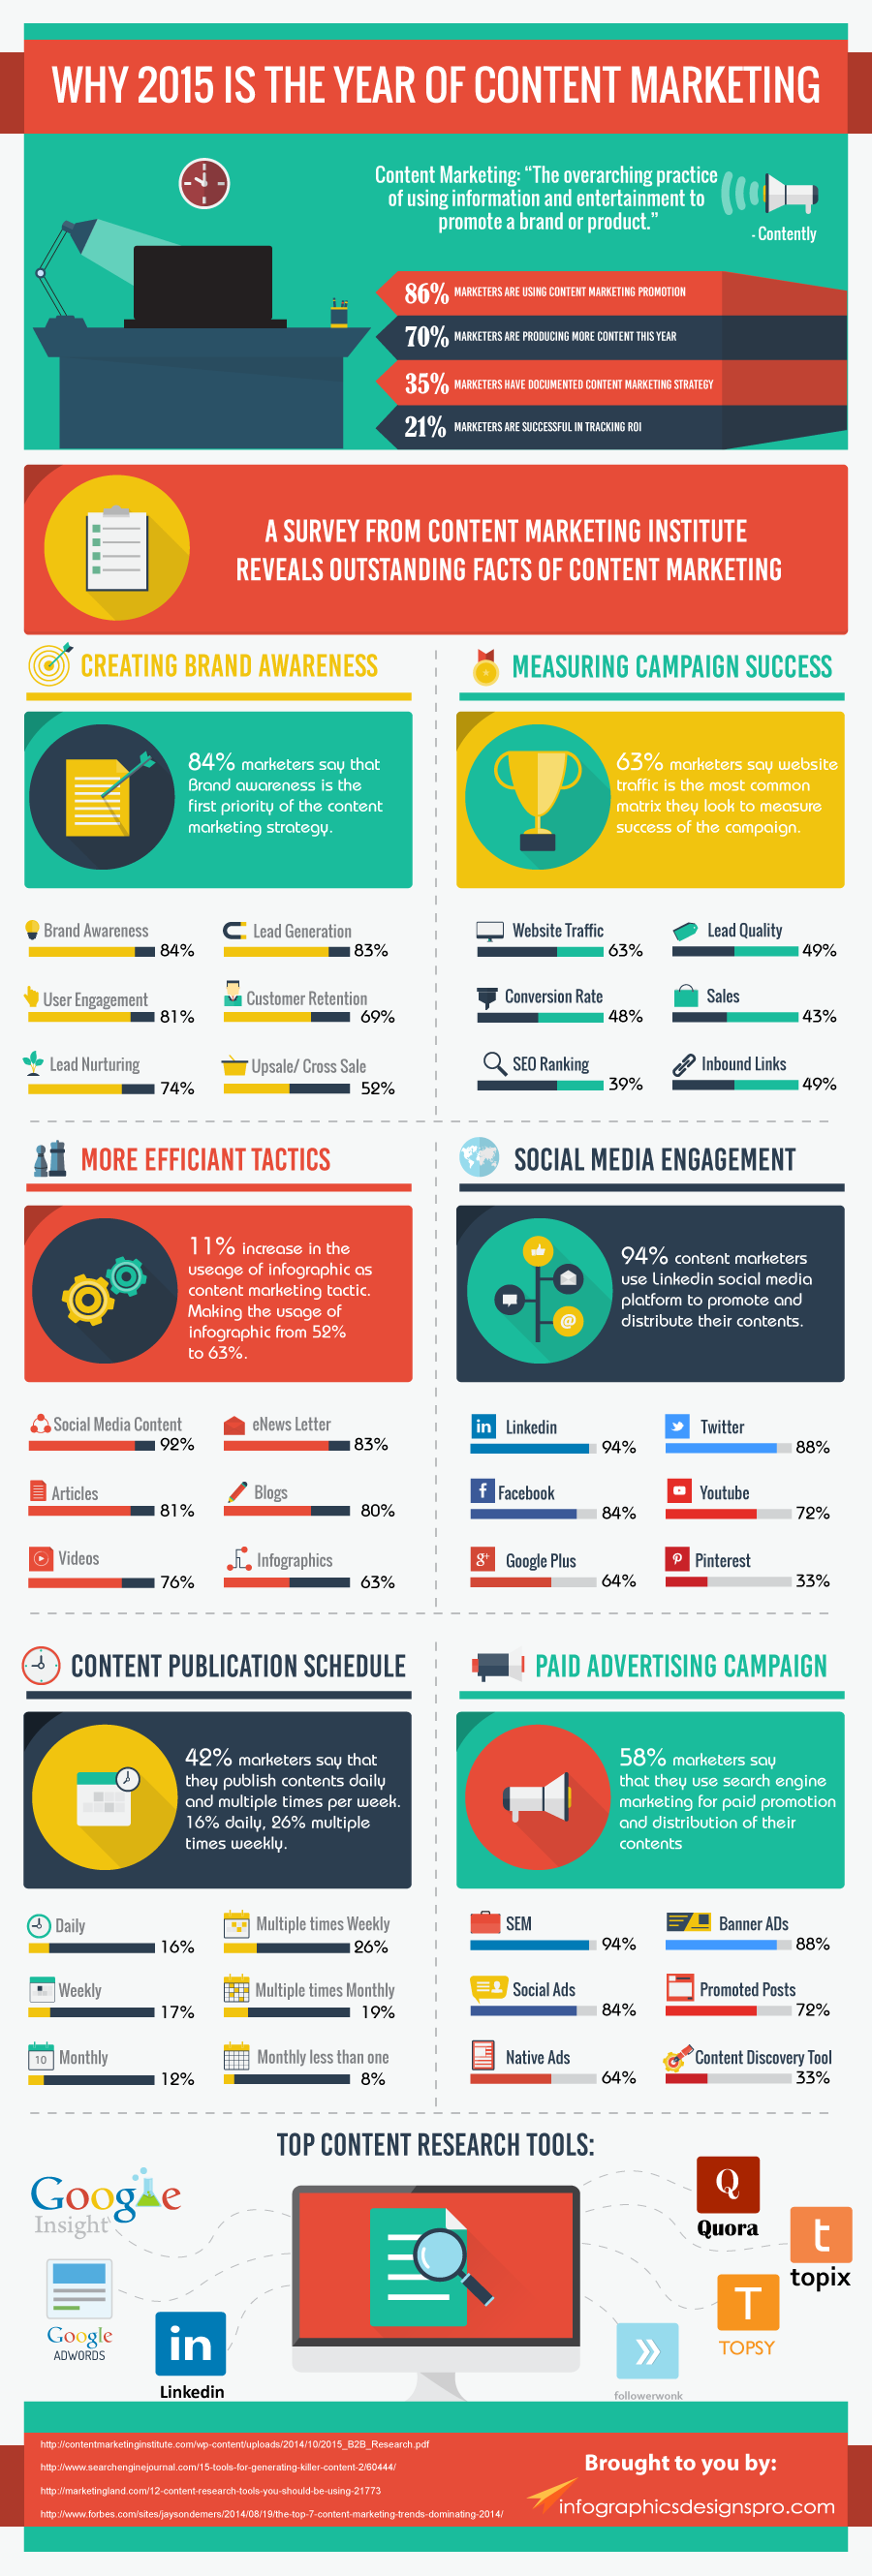 Infographic: Why 2015 is the Year of Content Marketing